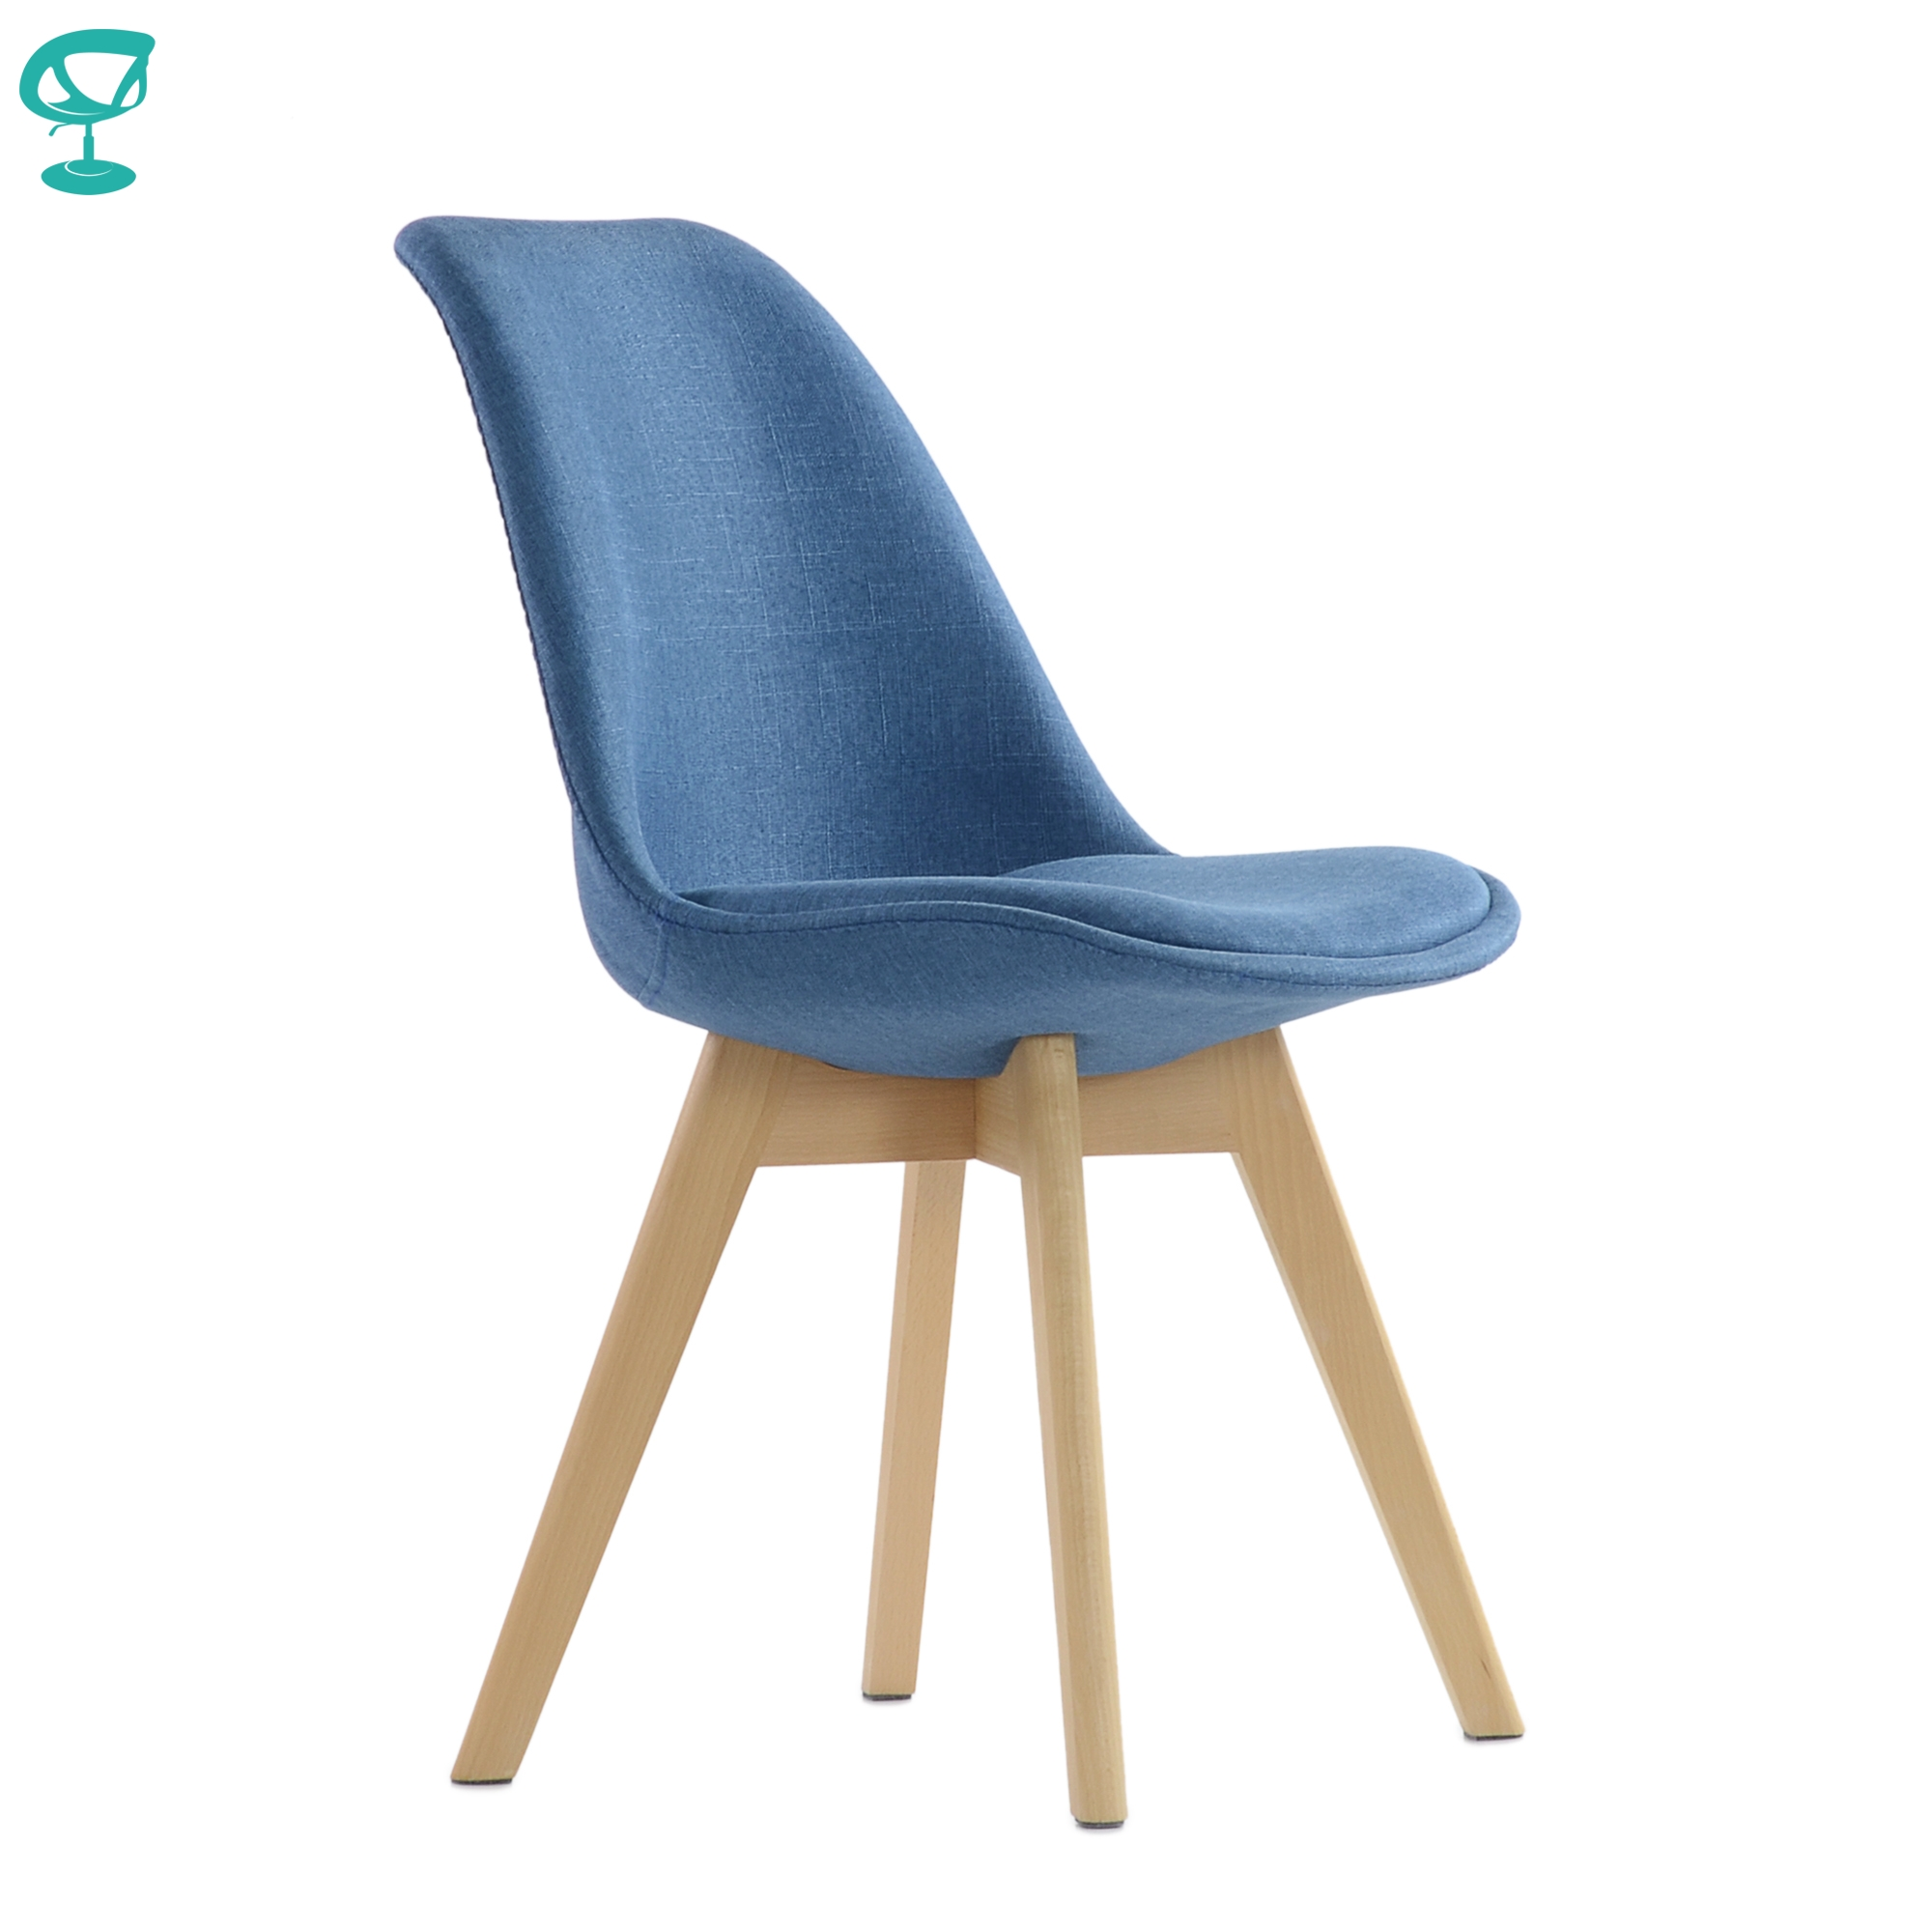 95738 Barneo N-22 Kitchen Blue Chair On Wooden Base Seat Fabric Chair For Living Room Chair Dining Furniture For Kitchen